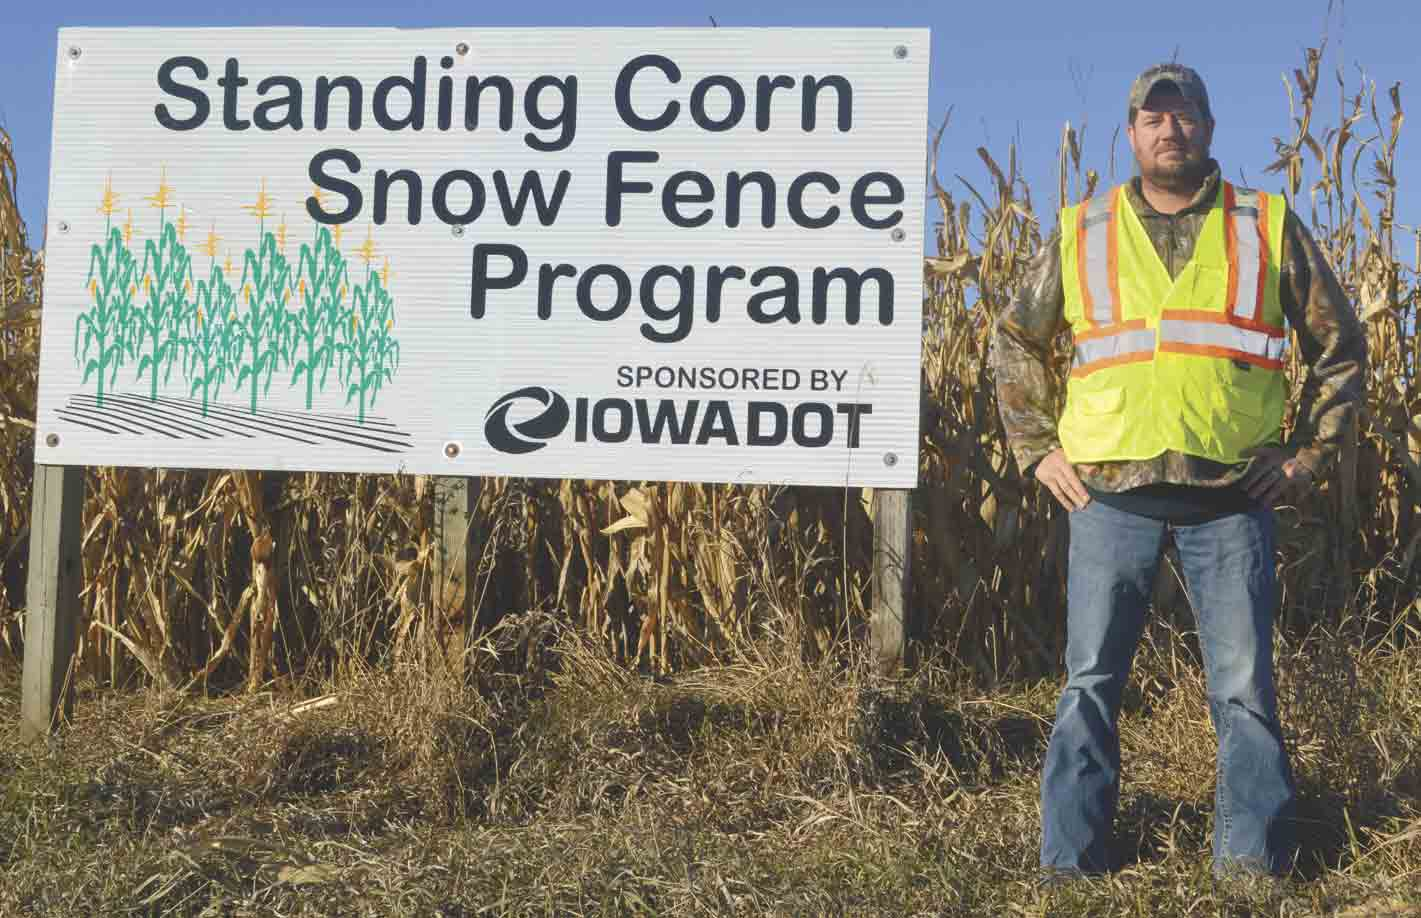 oel Monroe, Iowa Department of Transportation highway maintenance supervisor, points out one of the local standing-corn snow fences utilized throughout northeast Iowa to minimize blowing and drifting snow on adjacent roadways. (Zakary Kriener photo) 	Iowa DOT promoting standing-...